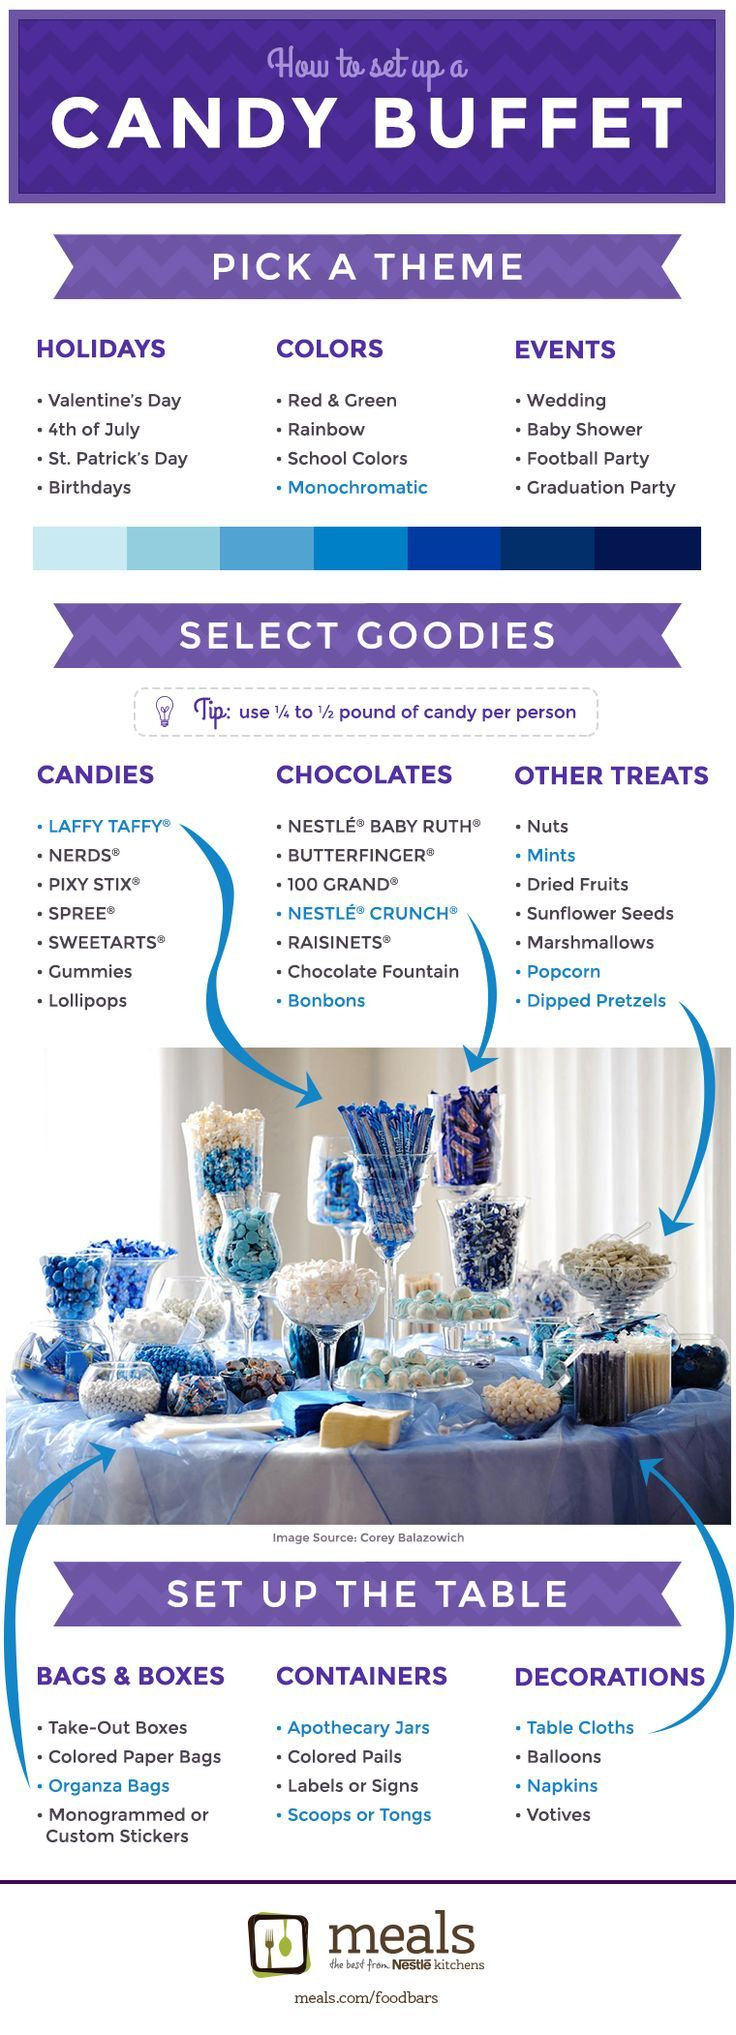 Candy Buffet |Mix 'em, match 'em or melt 'em. However you display your candy, it's a food bar that's sure to be a sweet success. Make your own candy treats with our recipes or enjoy the sheer simplicity of set